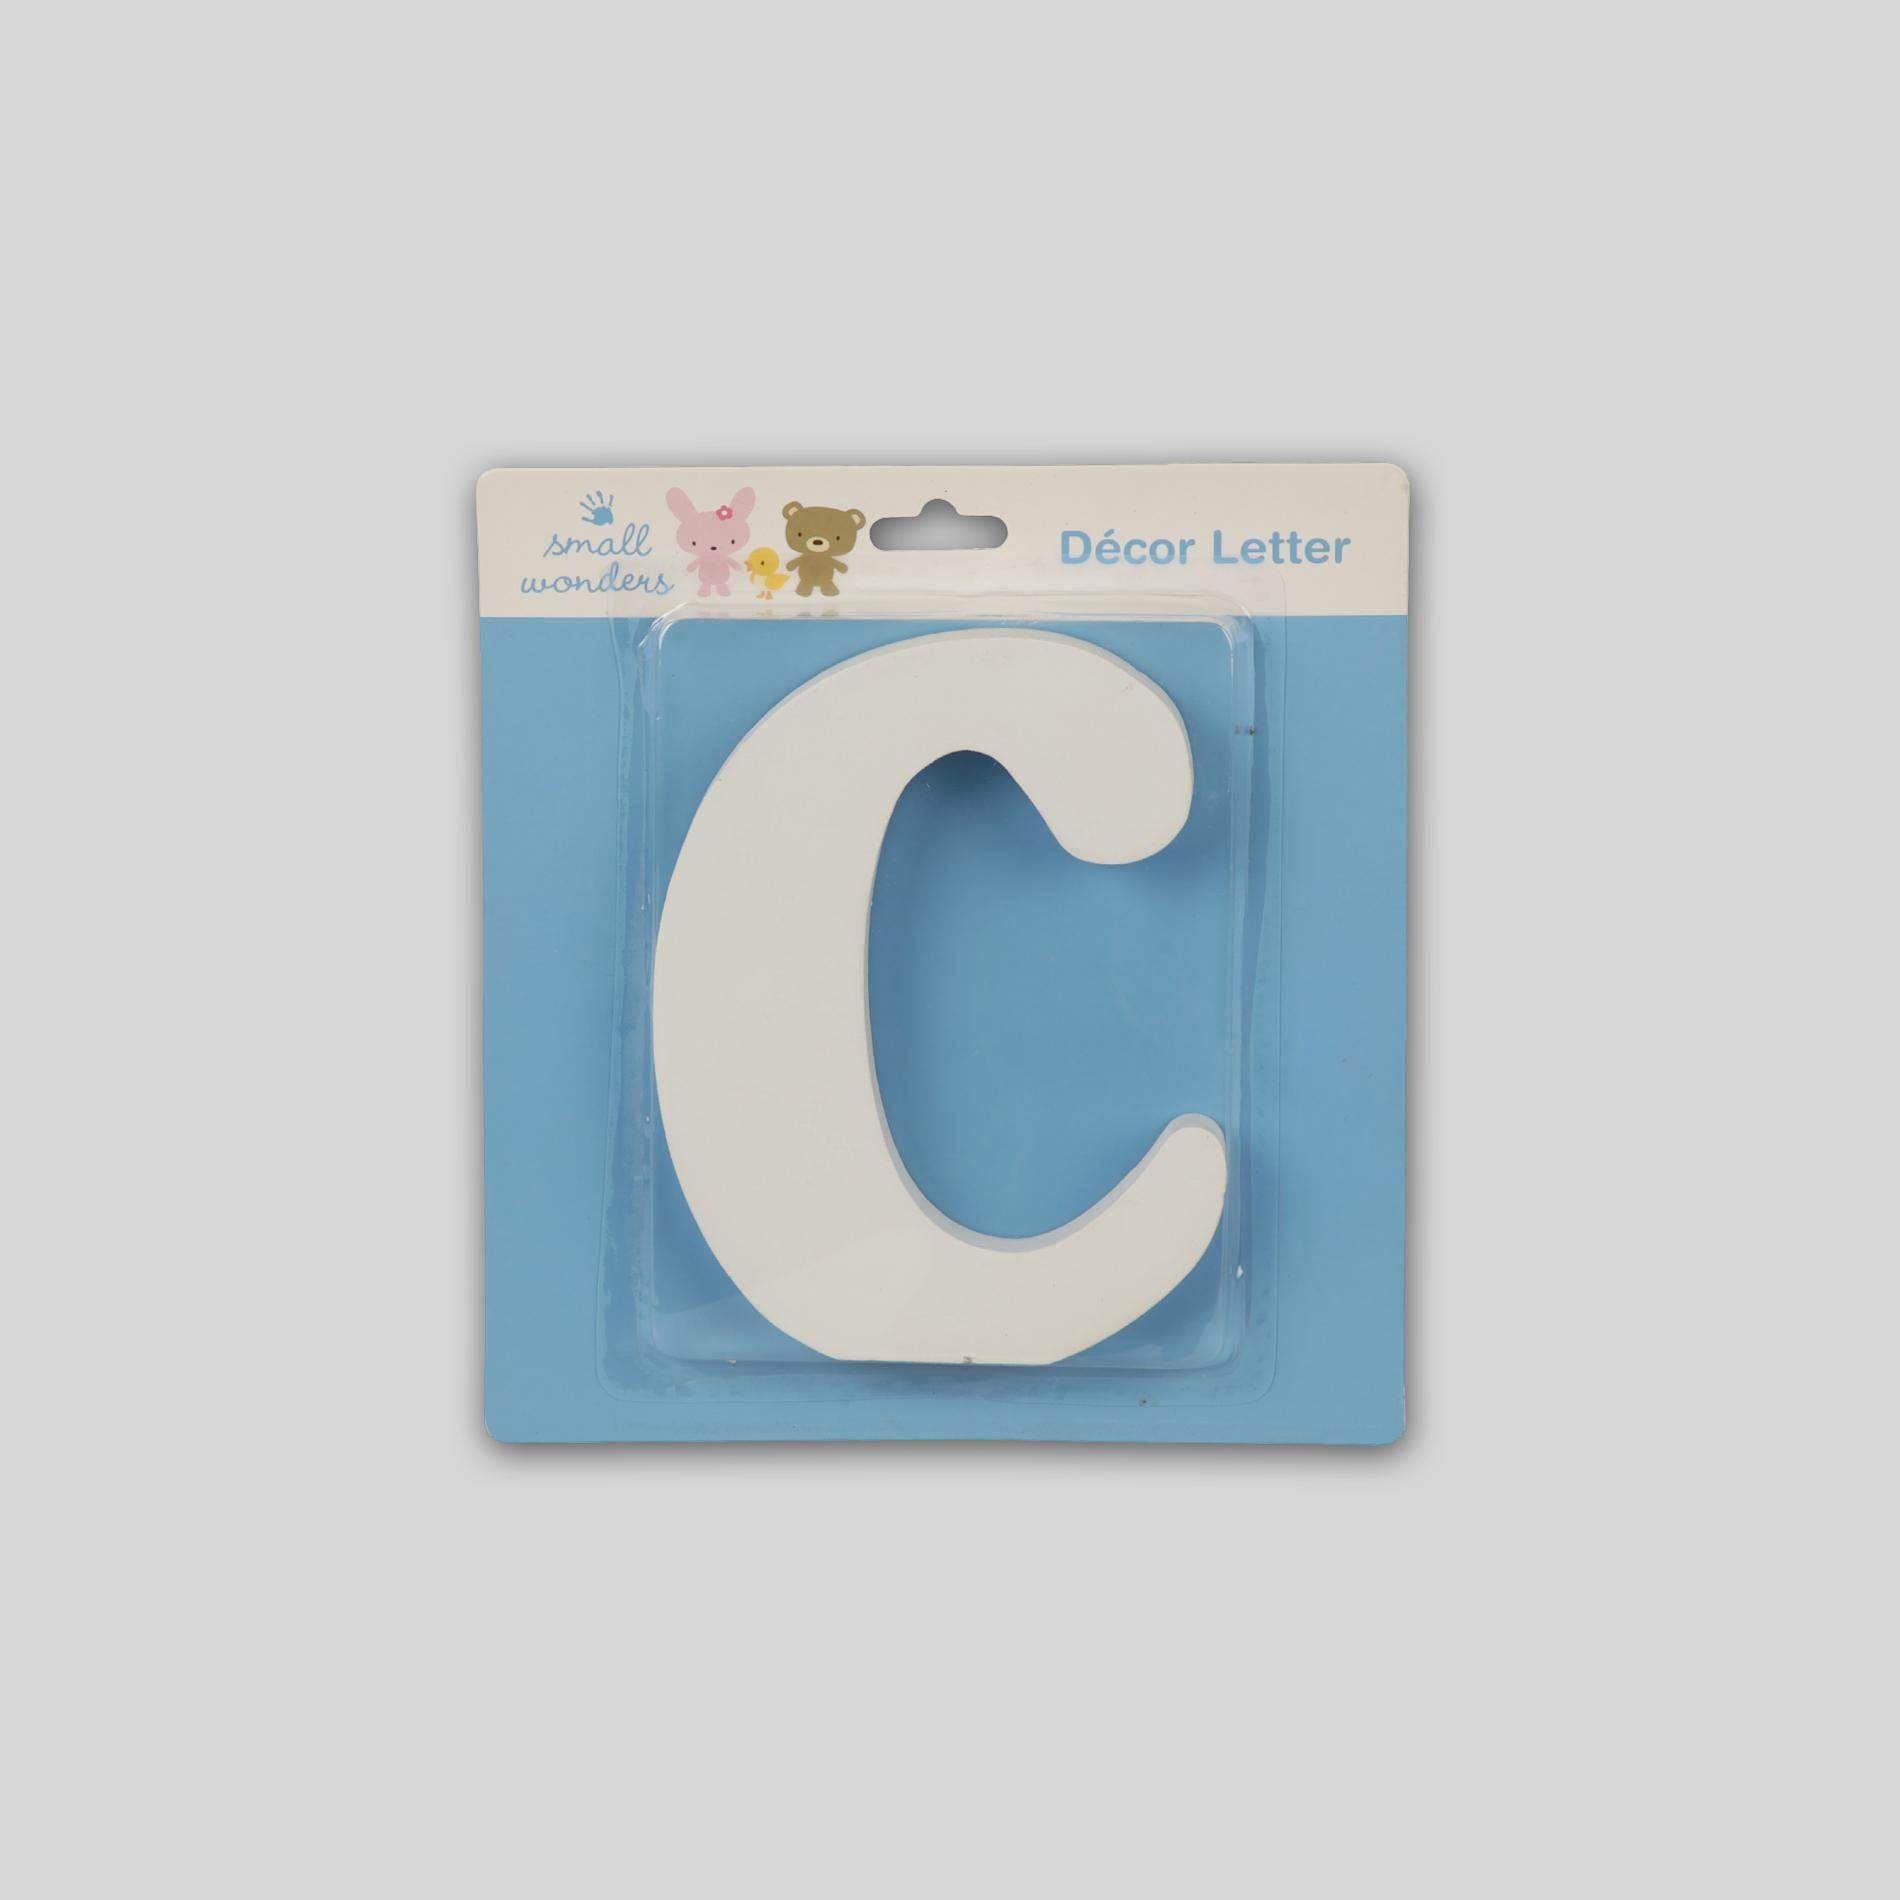 Small Wonders Wooden Letter Wall Decor - Letter C